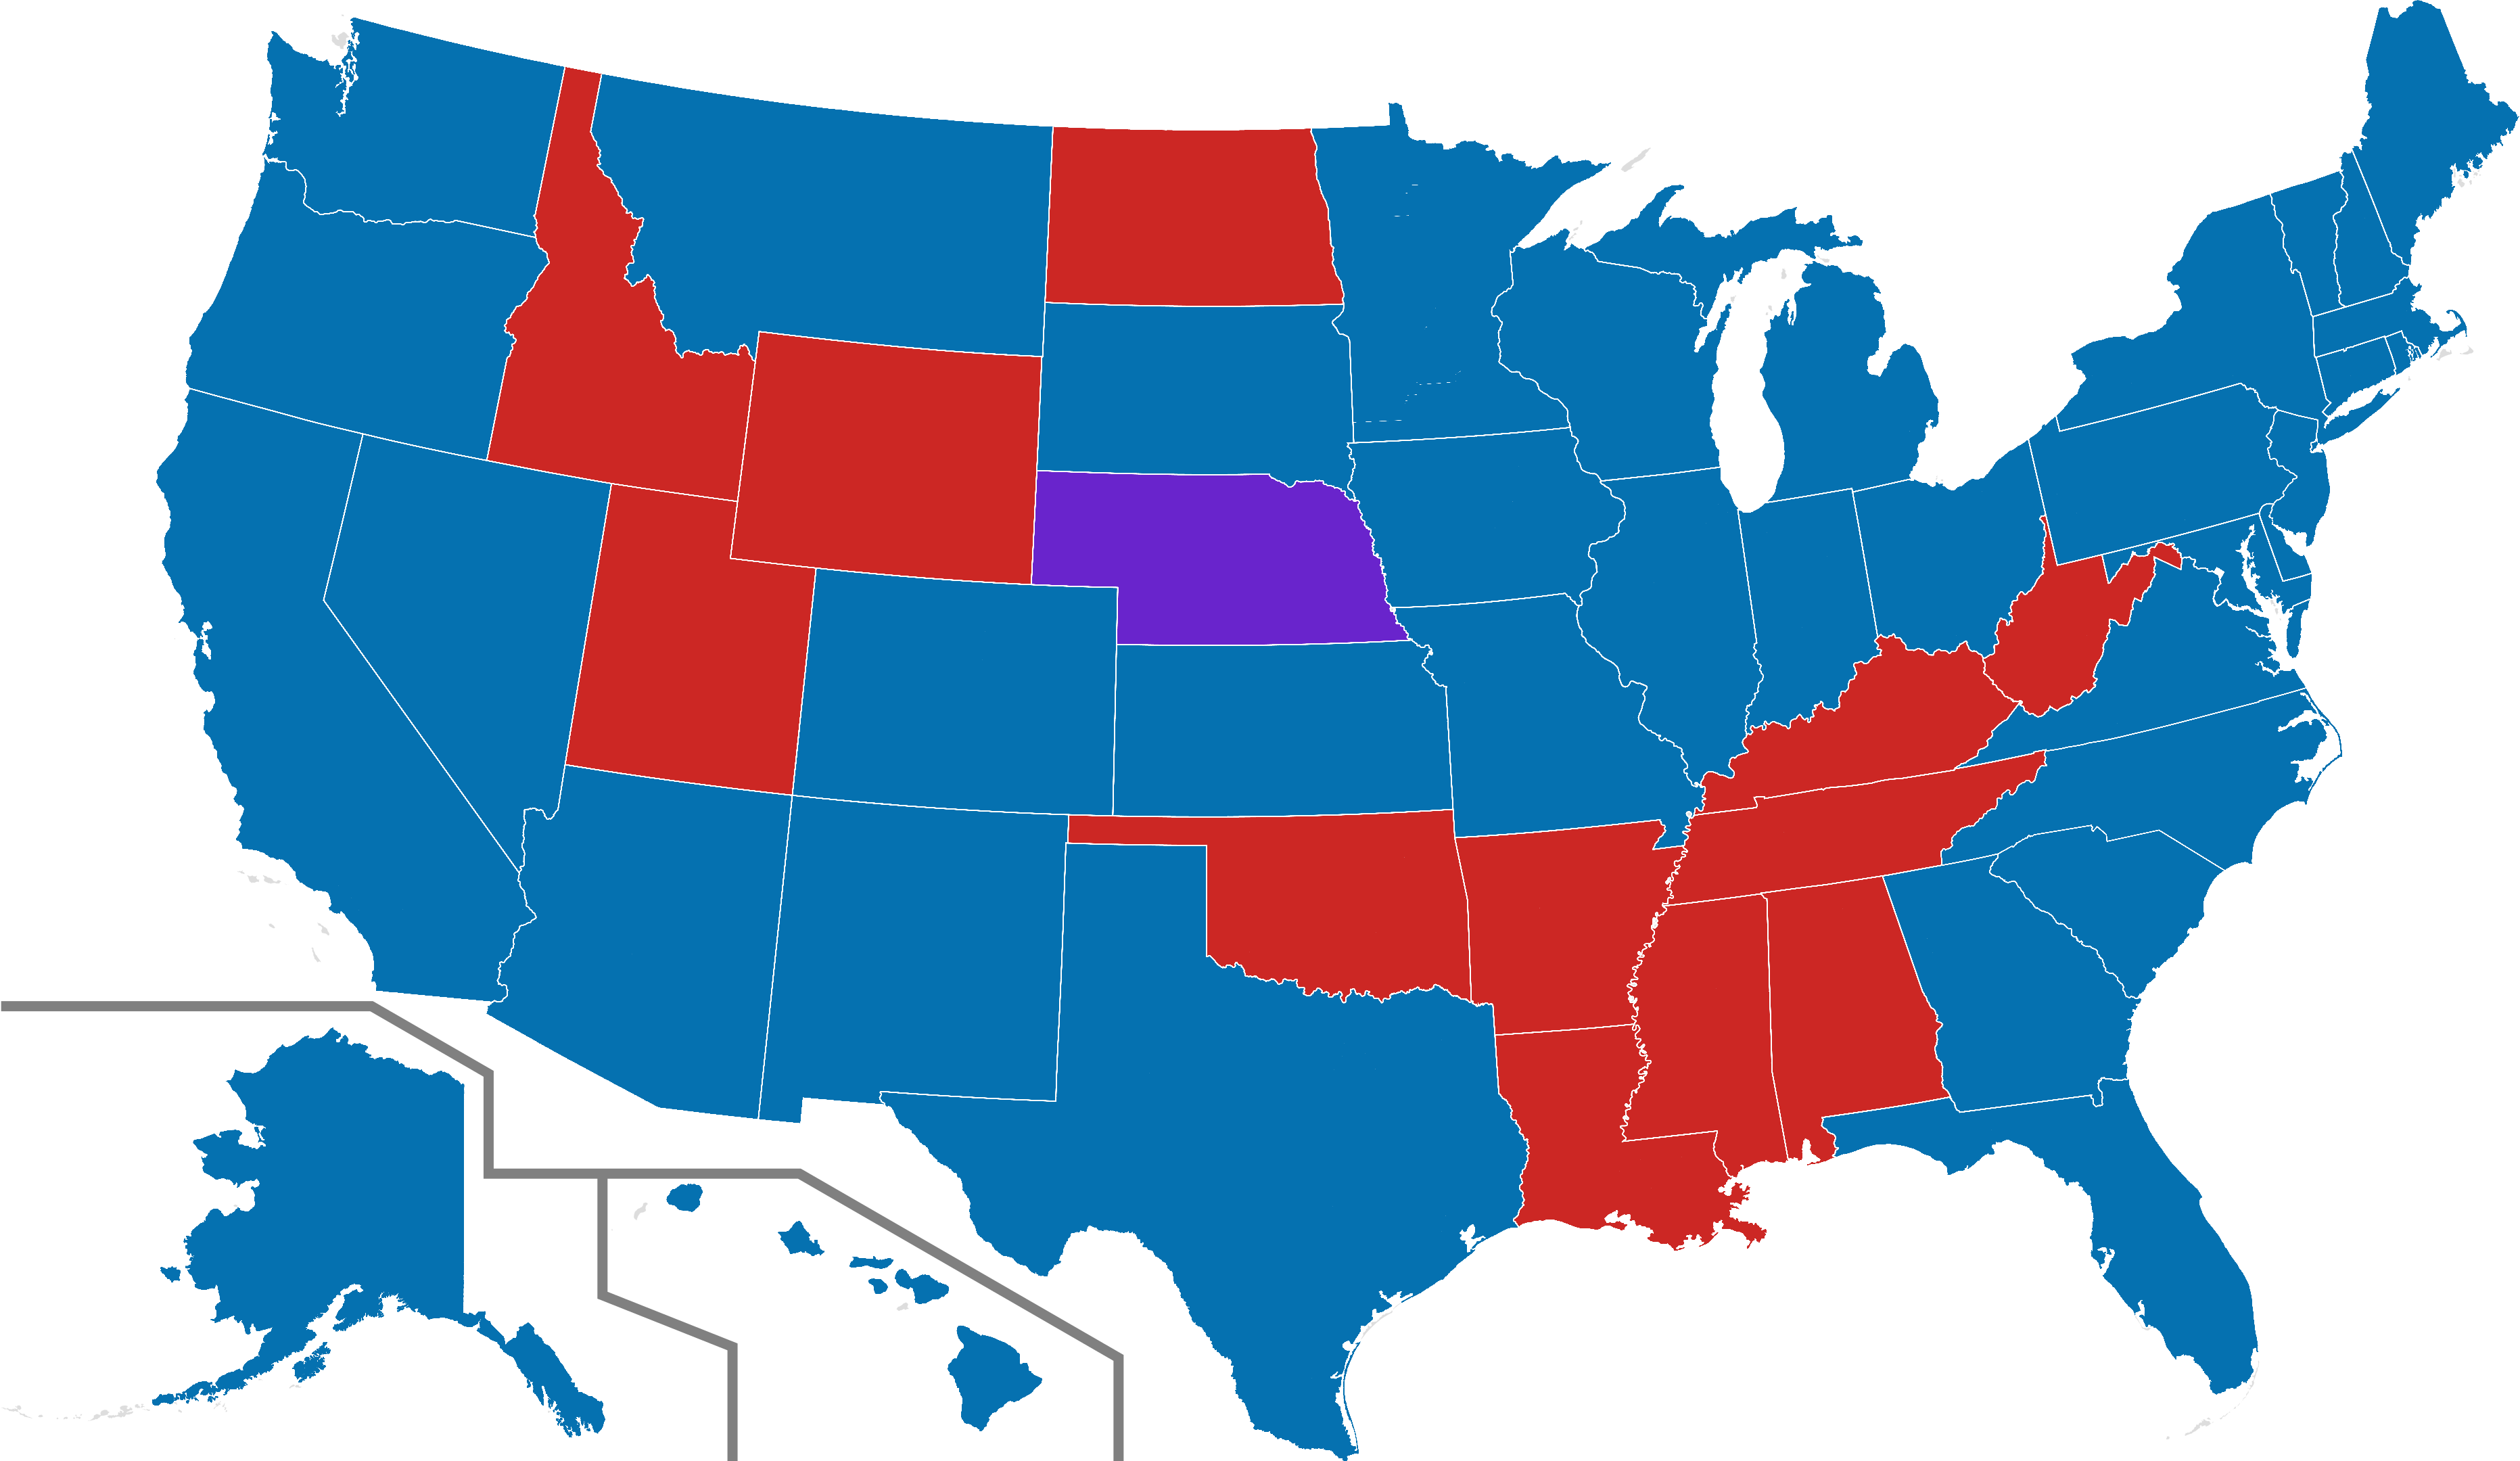 Map Of Us Polls File:2016 US presidential election polling map gender gap Clinton